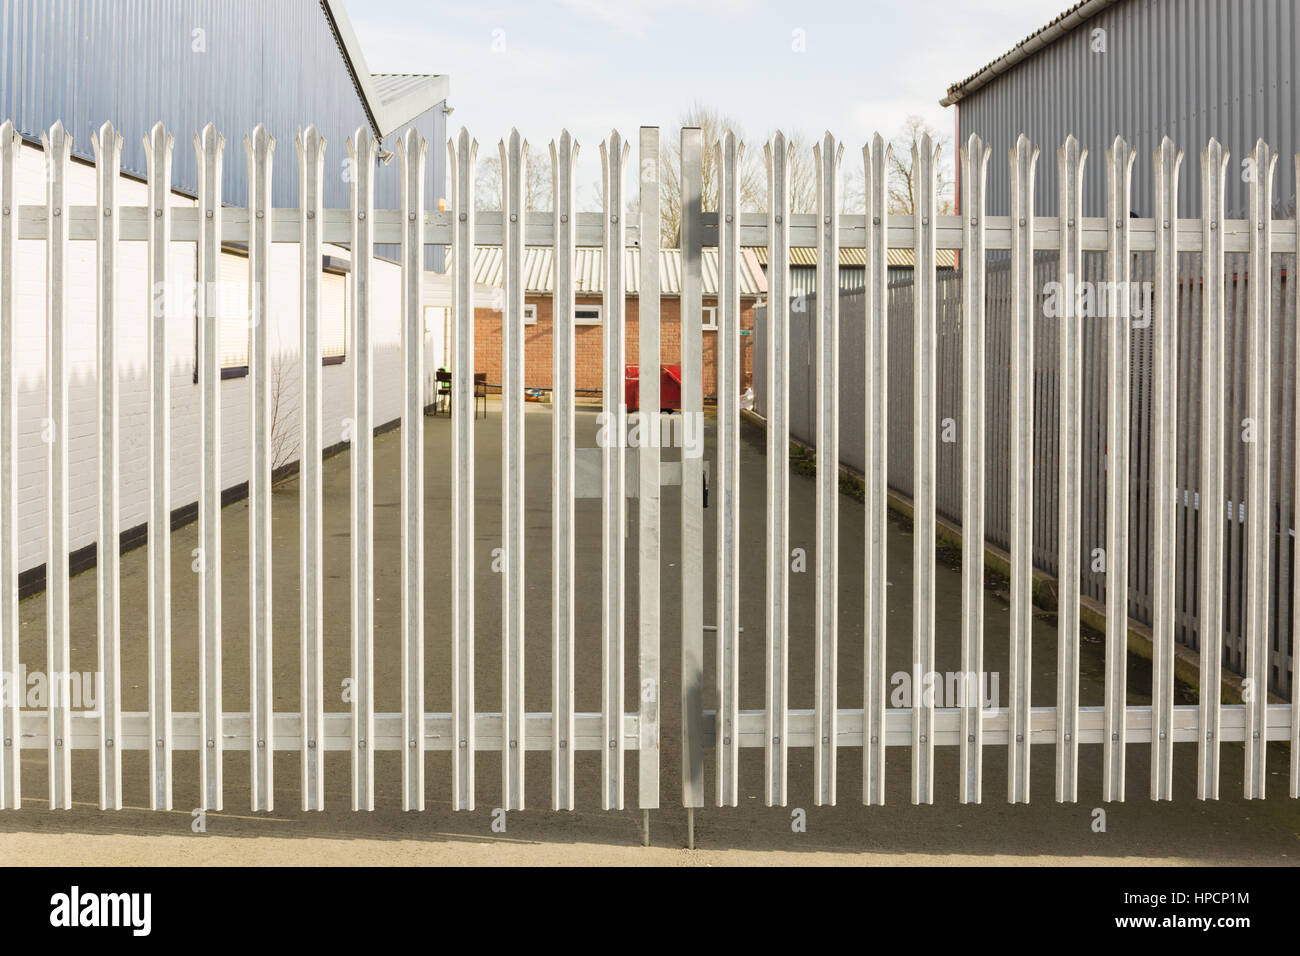 Set of locked spiked security gates at an industrial or commercial premises - Stock Image